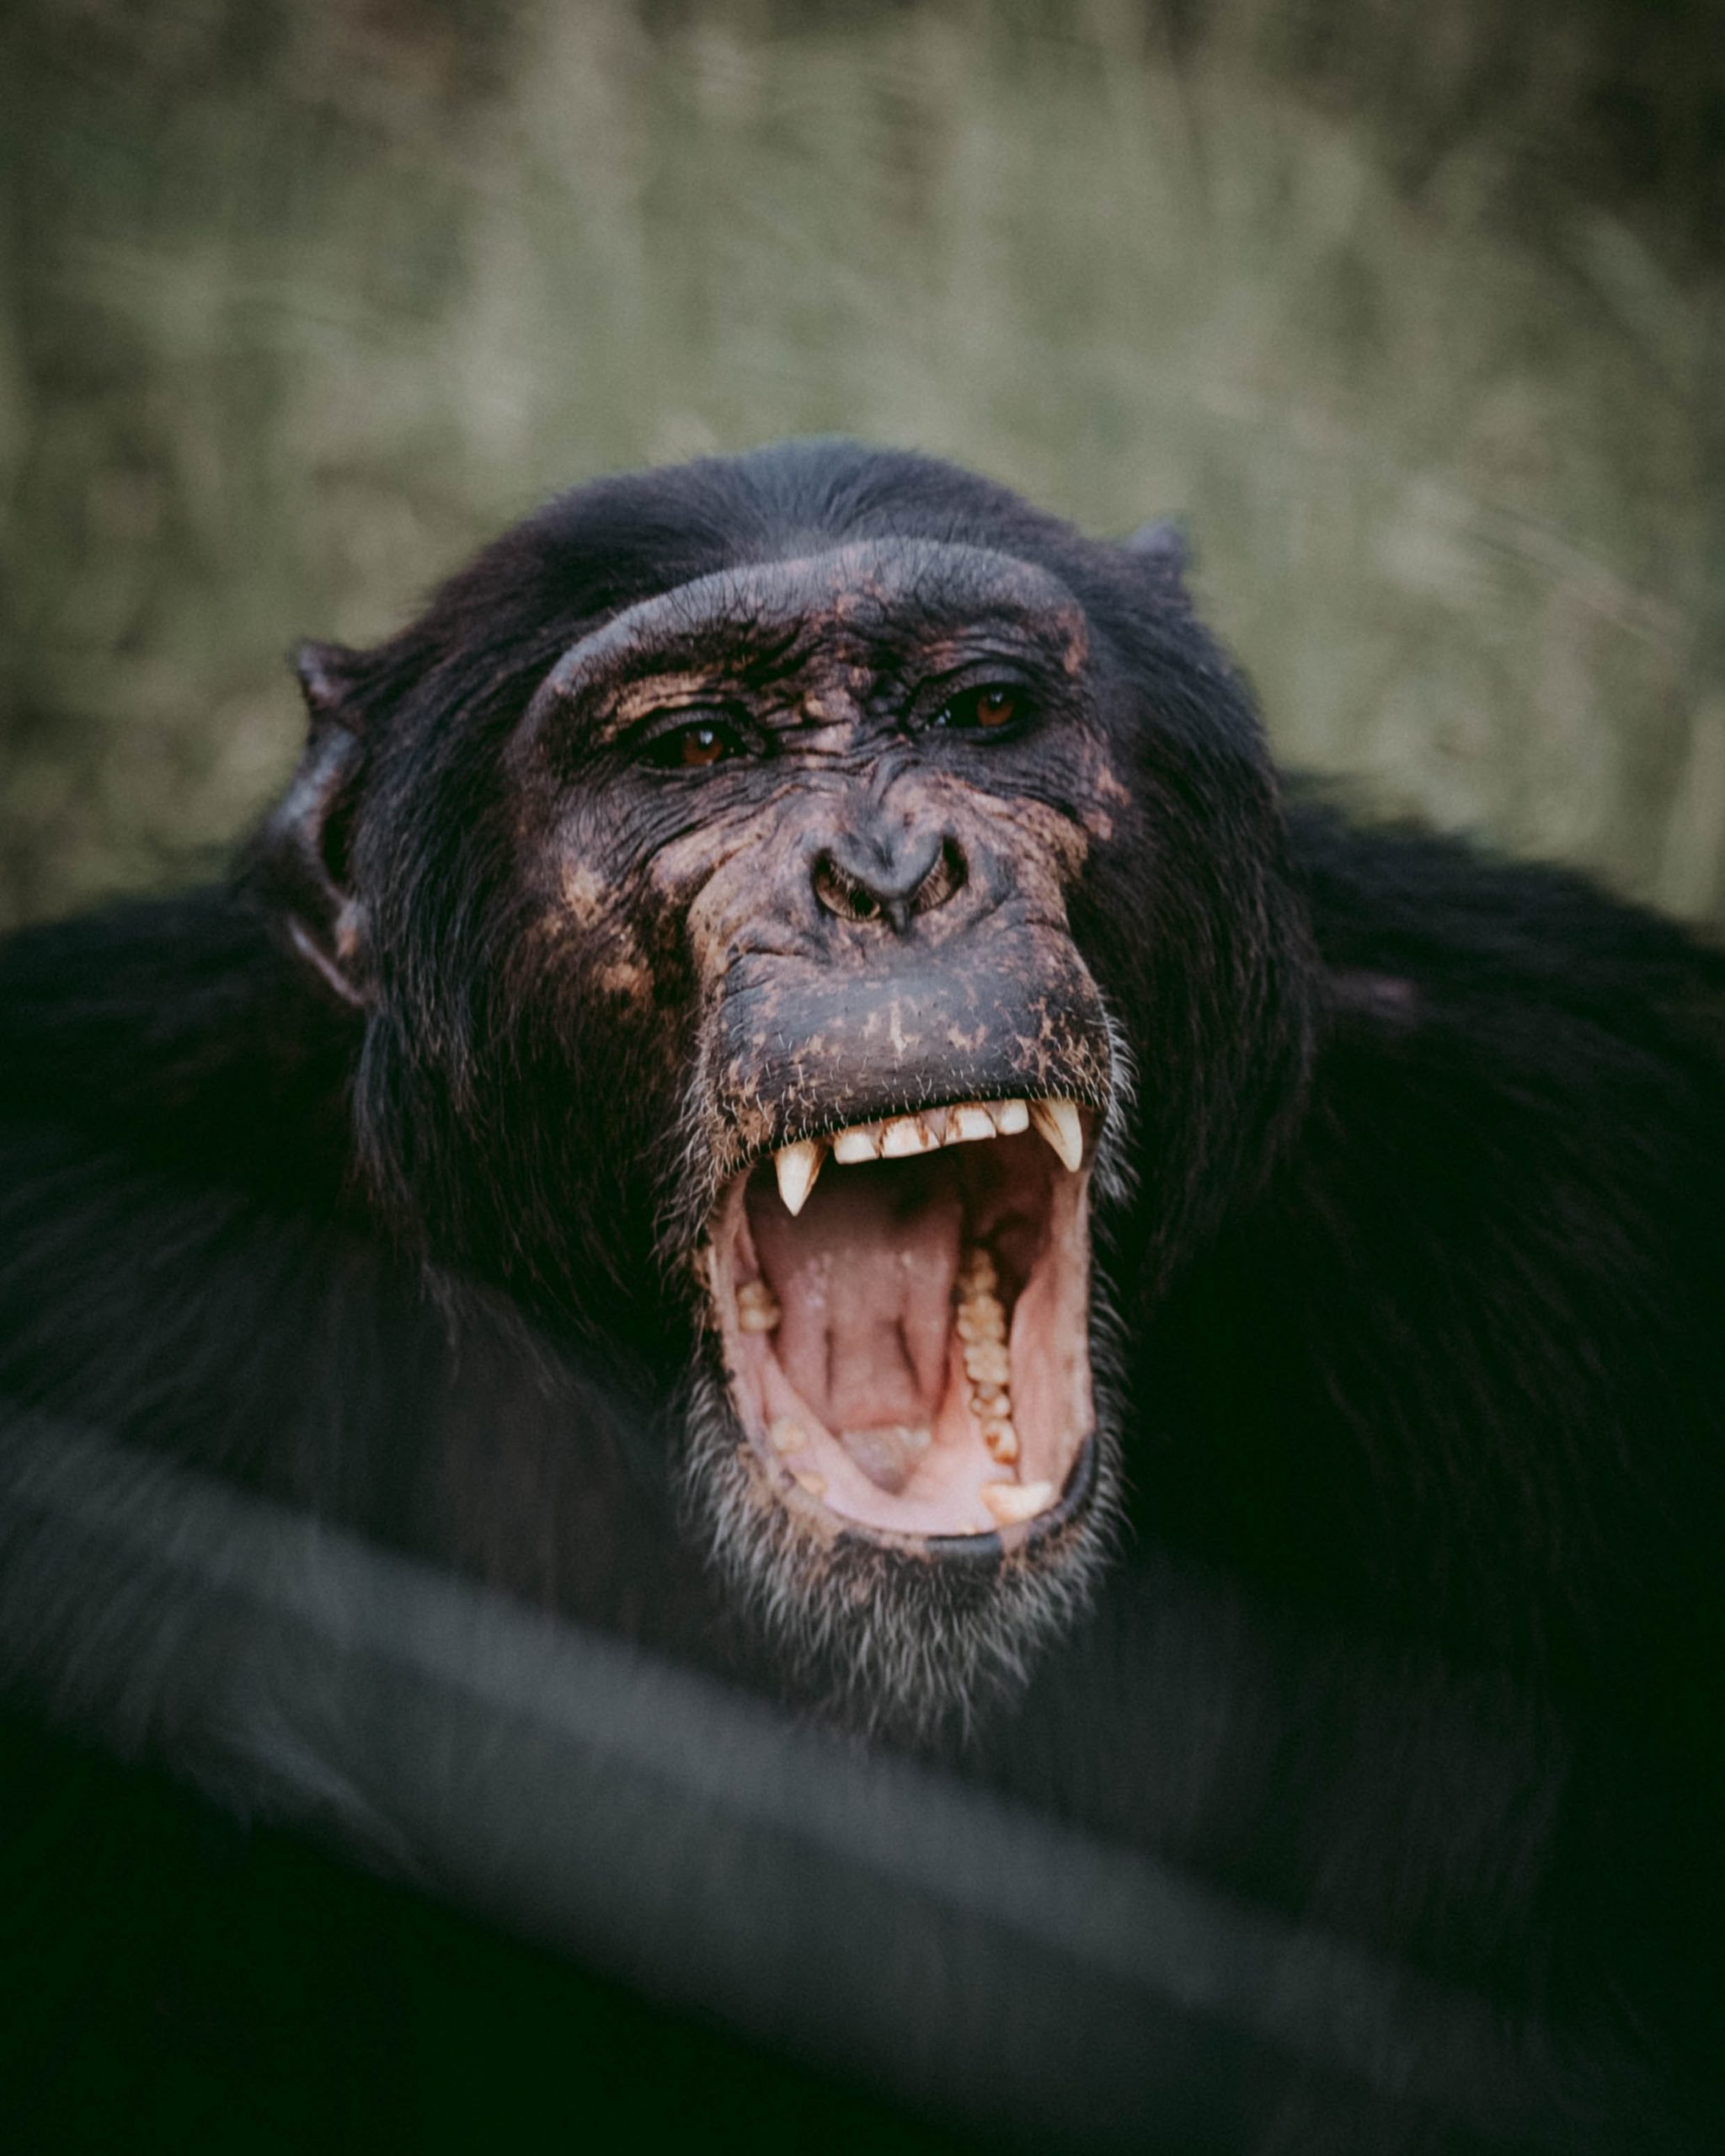 Chimp with mouth open